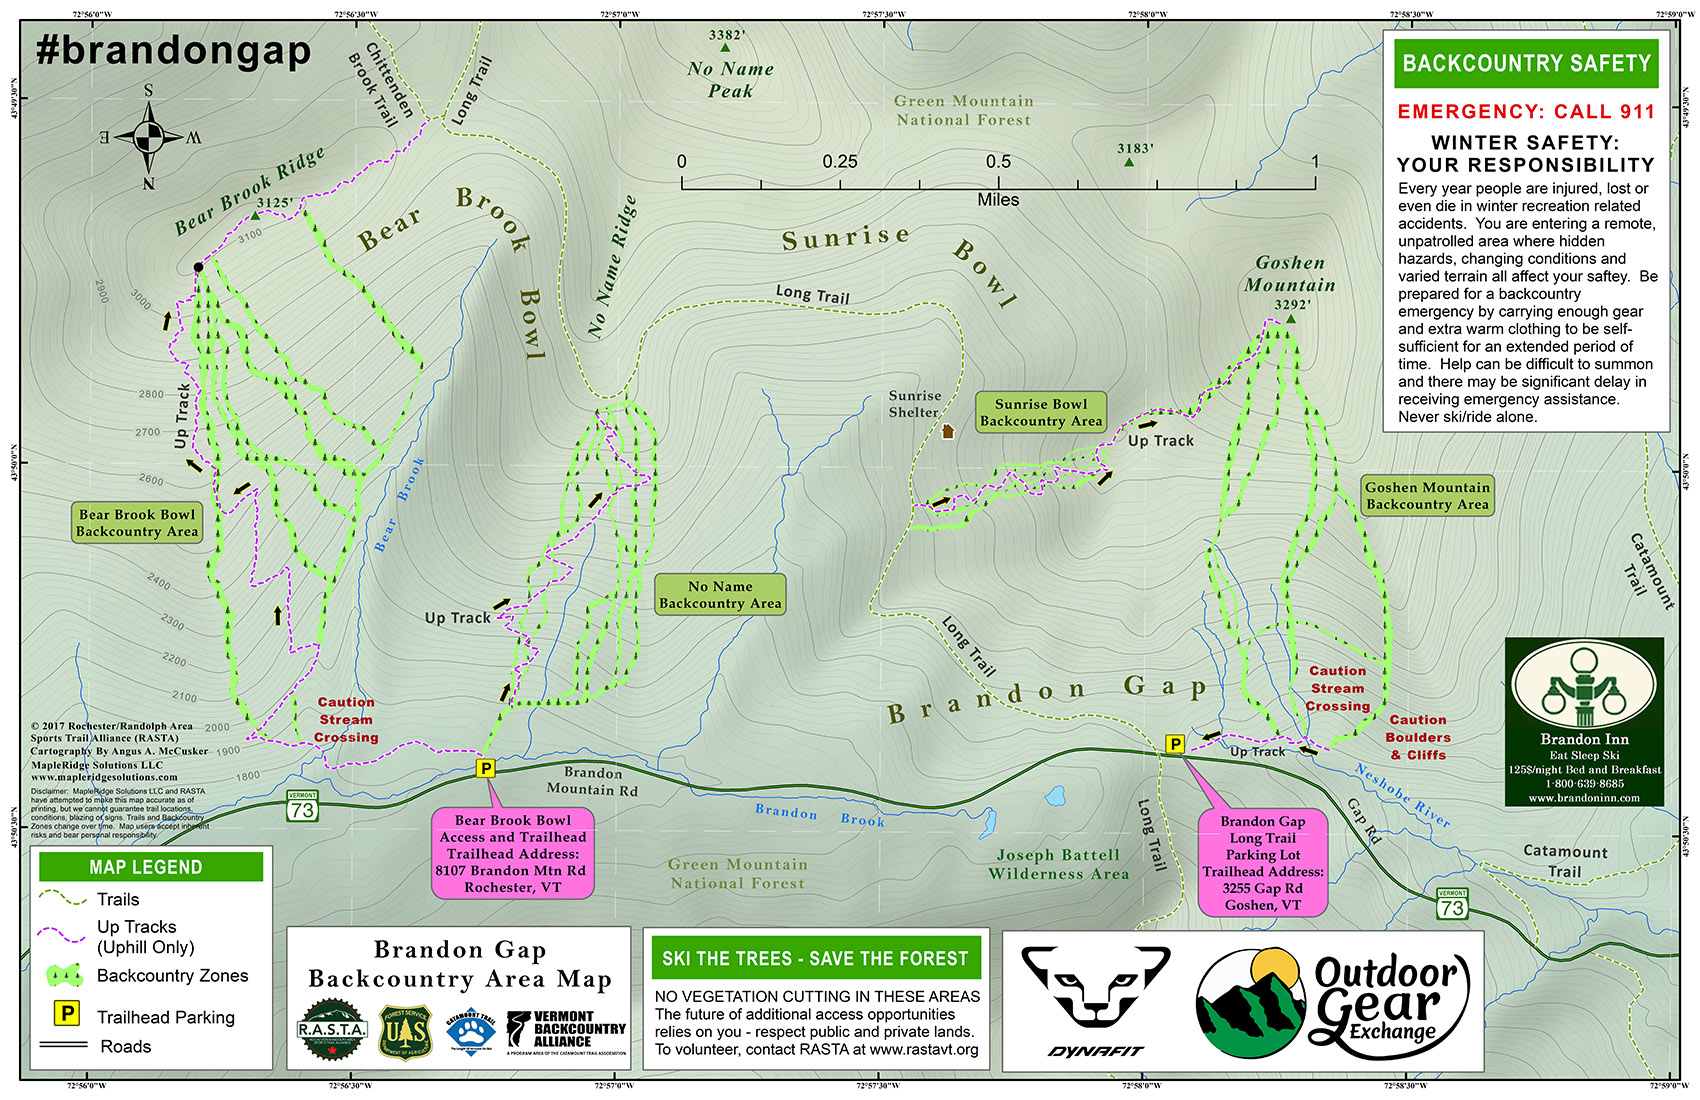 A copy of RASTA's detailed map for the Brandon Gap backcountry area.  Please visit RASTA's website for a full-size version of the map